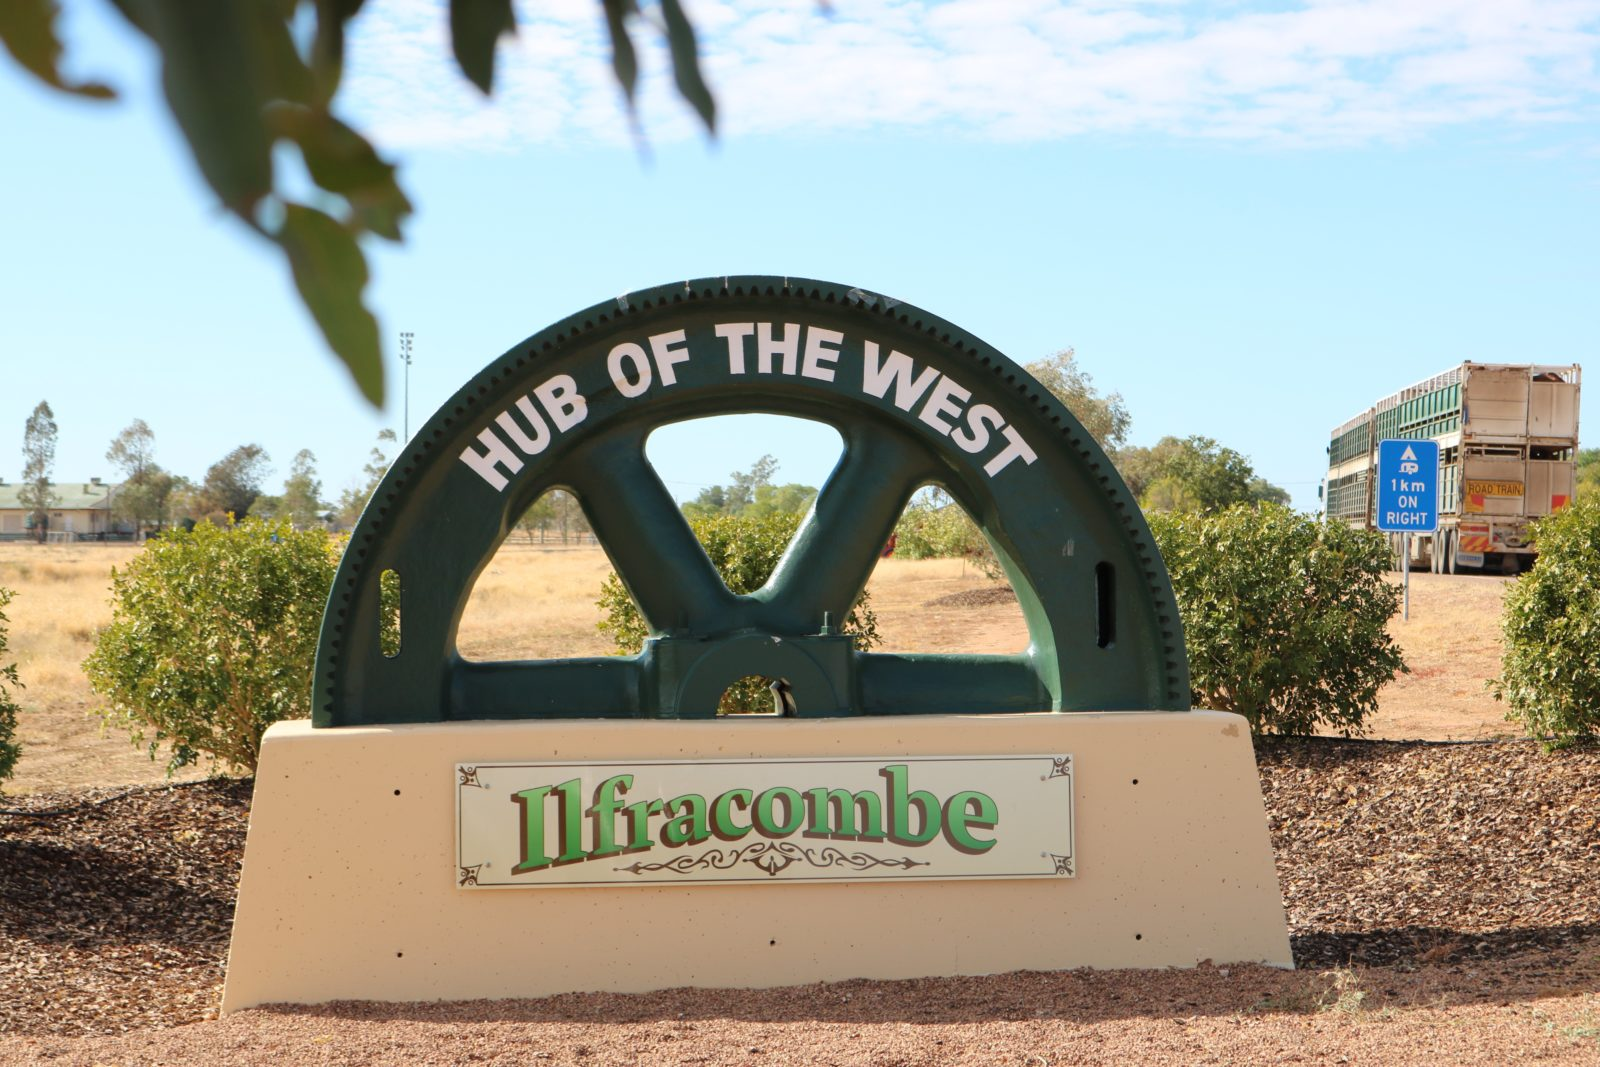 Hub of the West